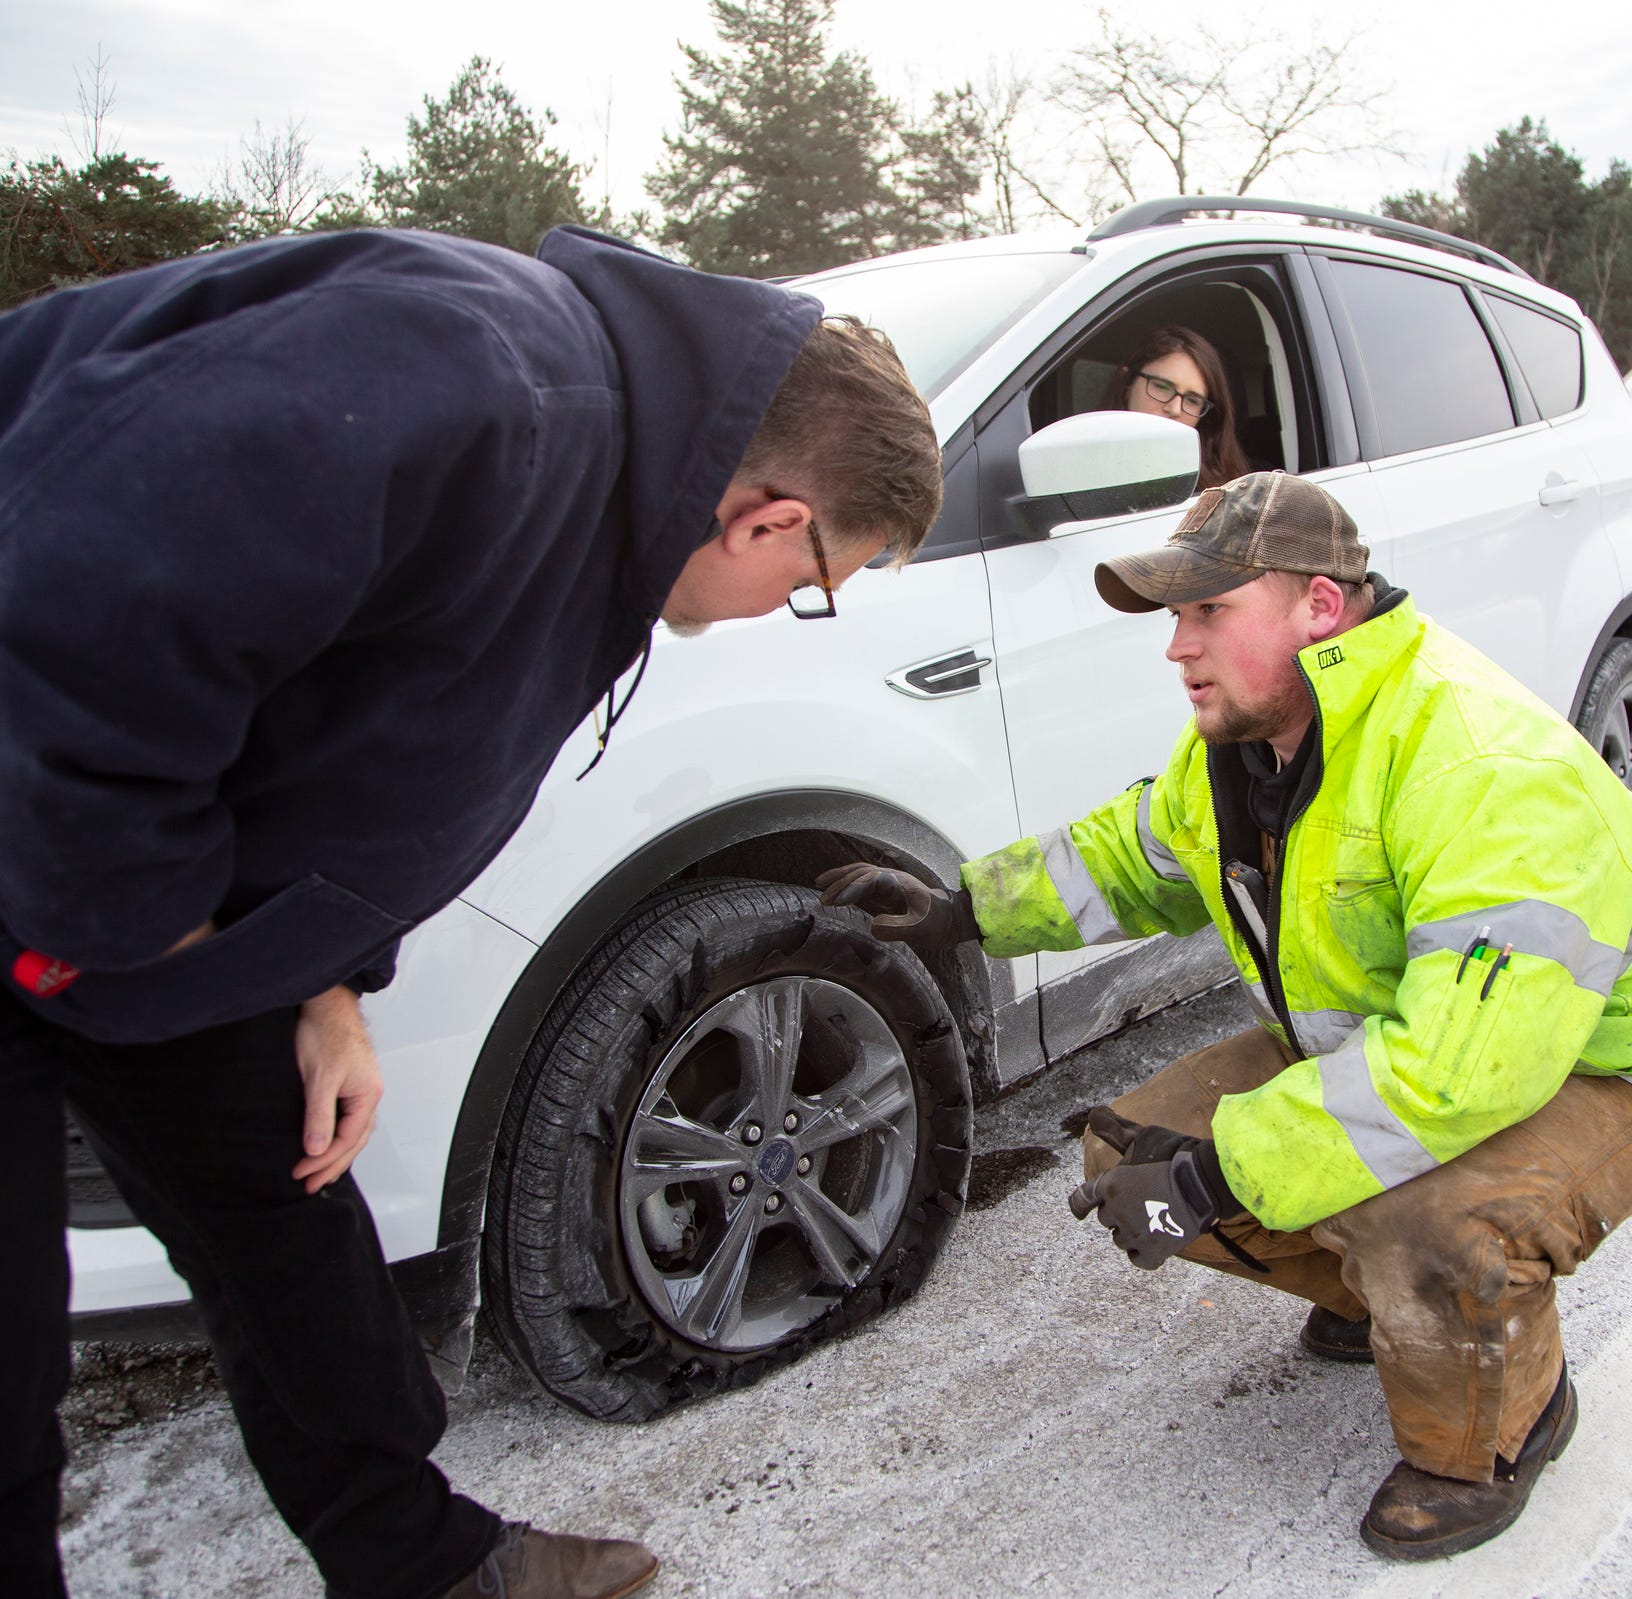 Major cracks, potholes are damaging cars on I-75 Oakland County